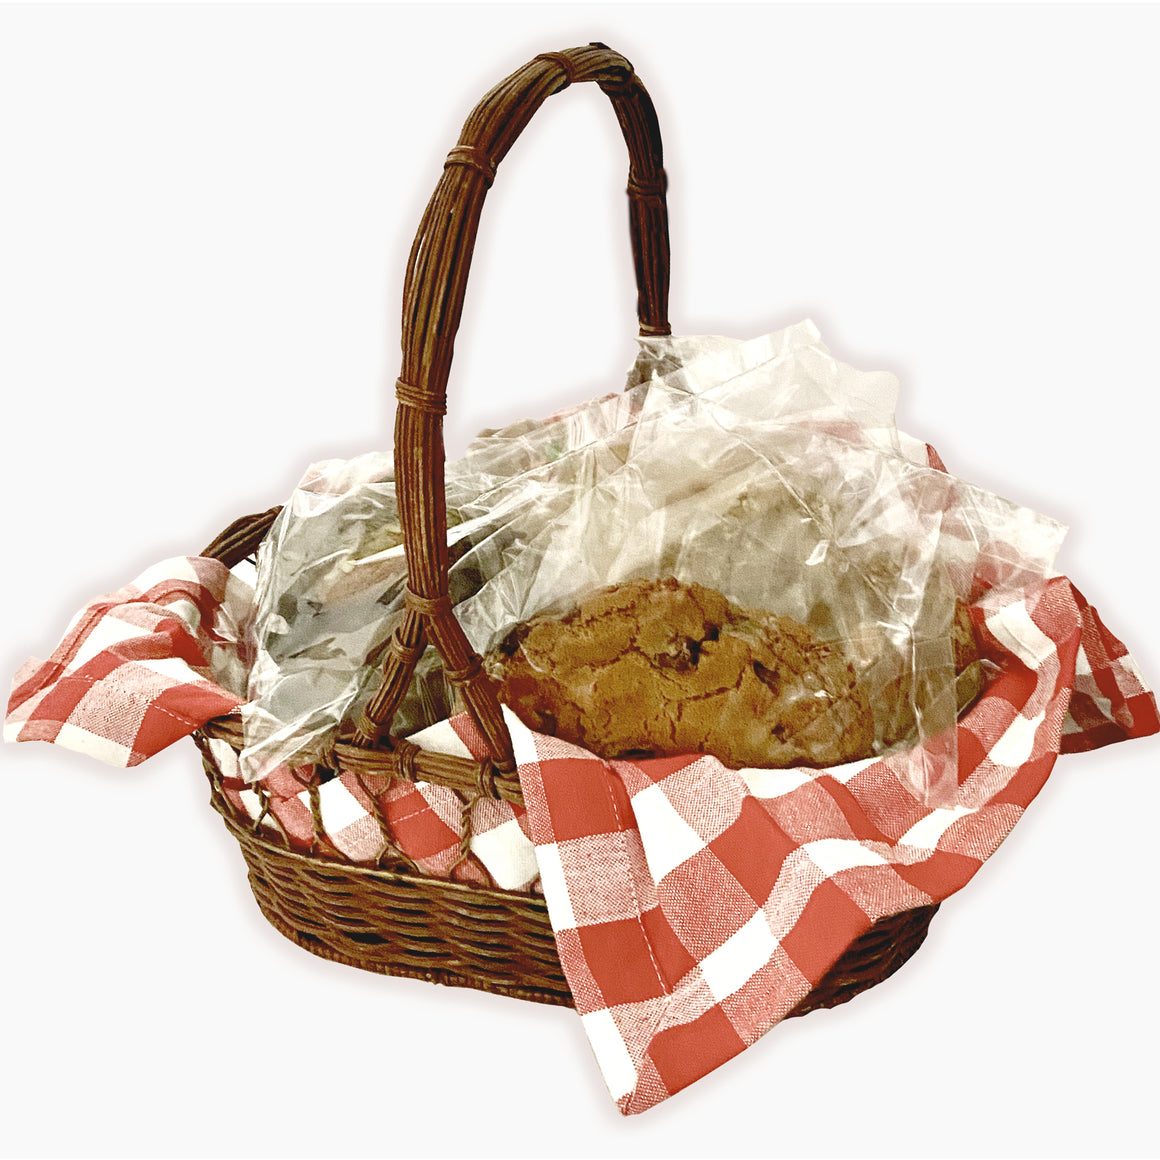 12 Piece Gluten-Free Appreciation Basket